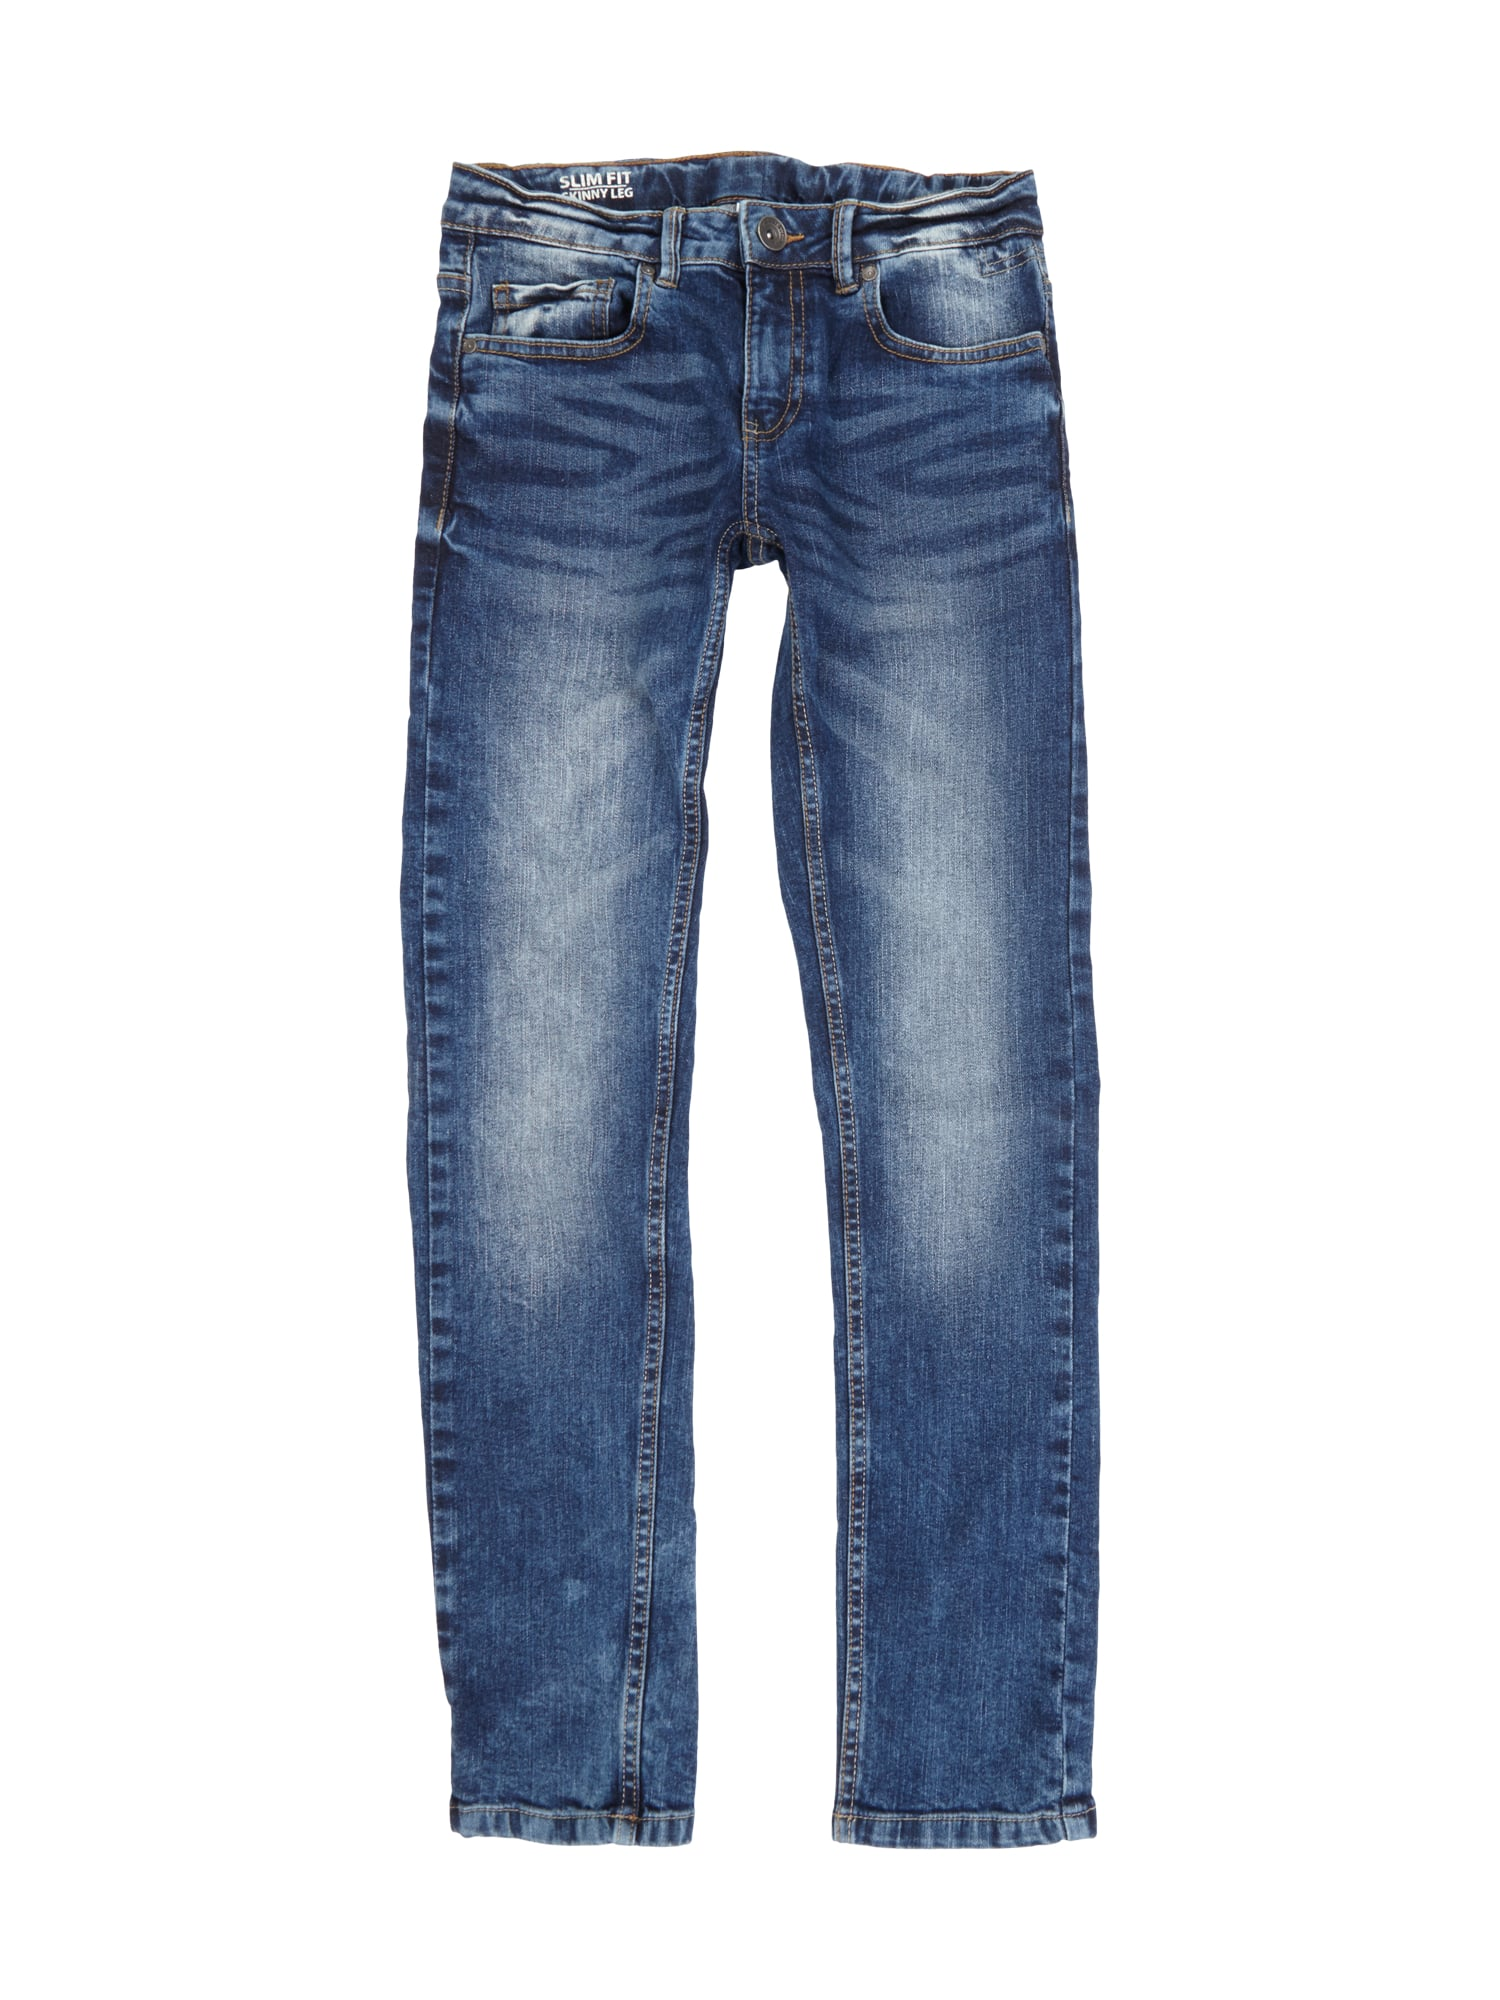 review for teens skinny fit jeans mit regulierbarer bundweite in blau t rkis online kaufen. Black Bedroom Furniture Sets. Home Design Ideas